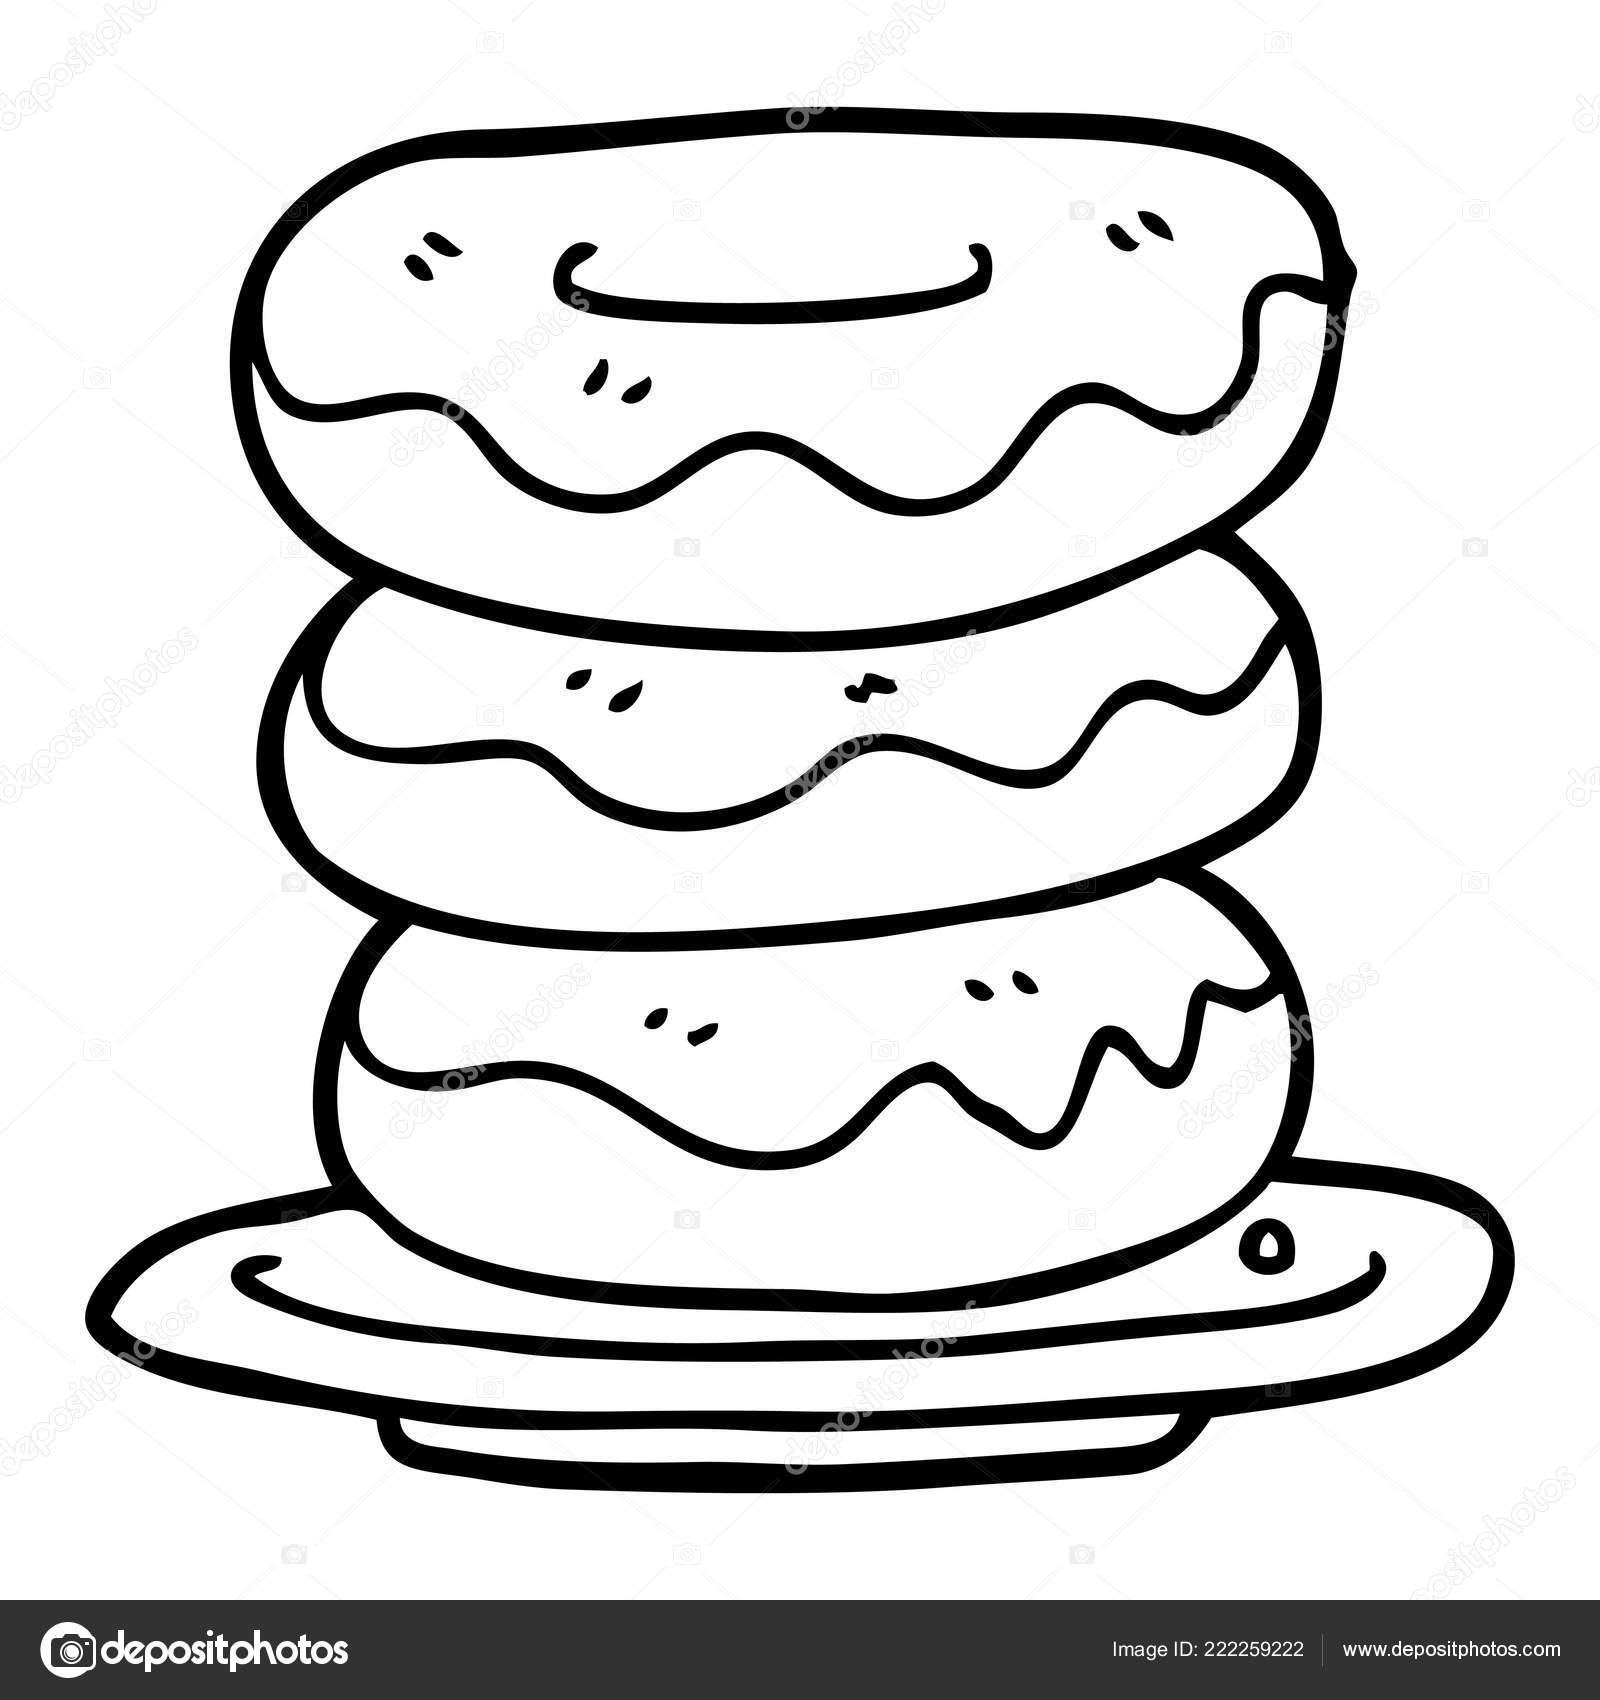 Line Drawing Cartoon Plate Donuts Stock Vector C Lineartestpilot